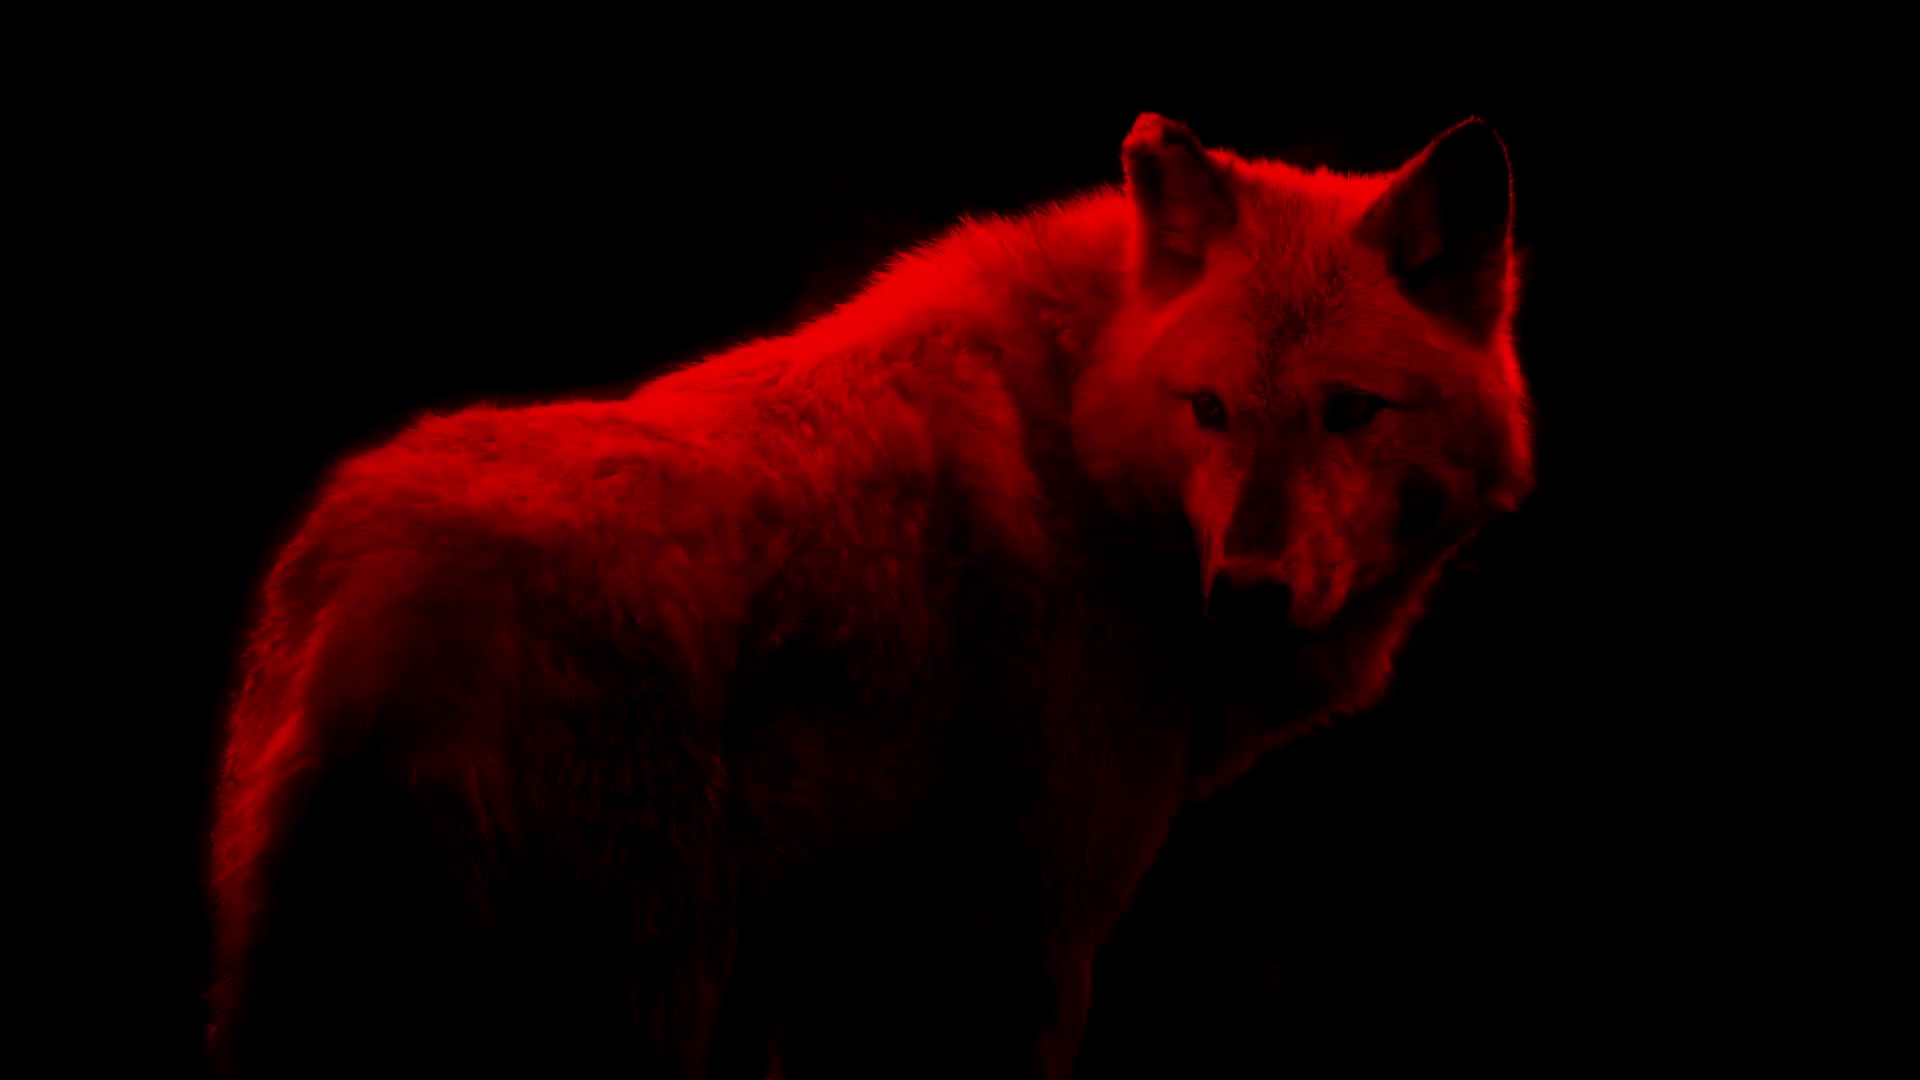 Blood Red Wolf Abstract Stock Video Footage - Videoblocks